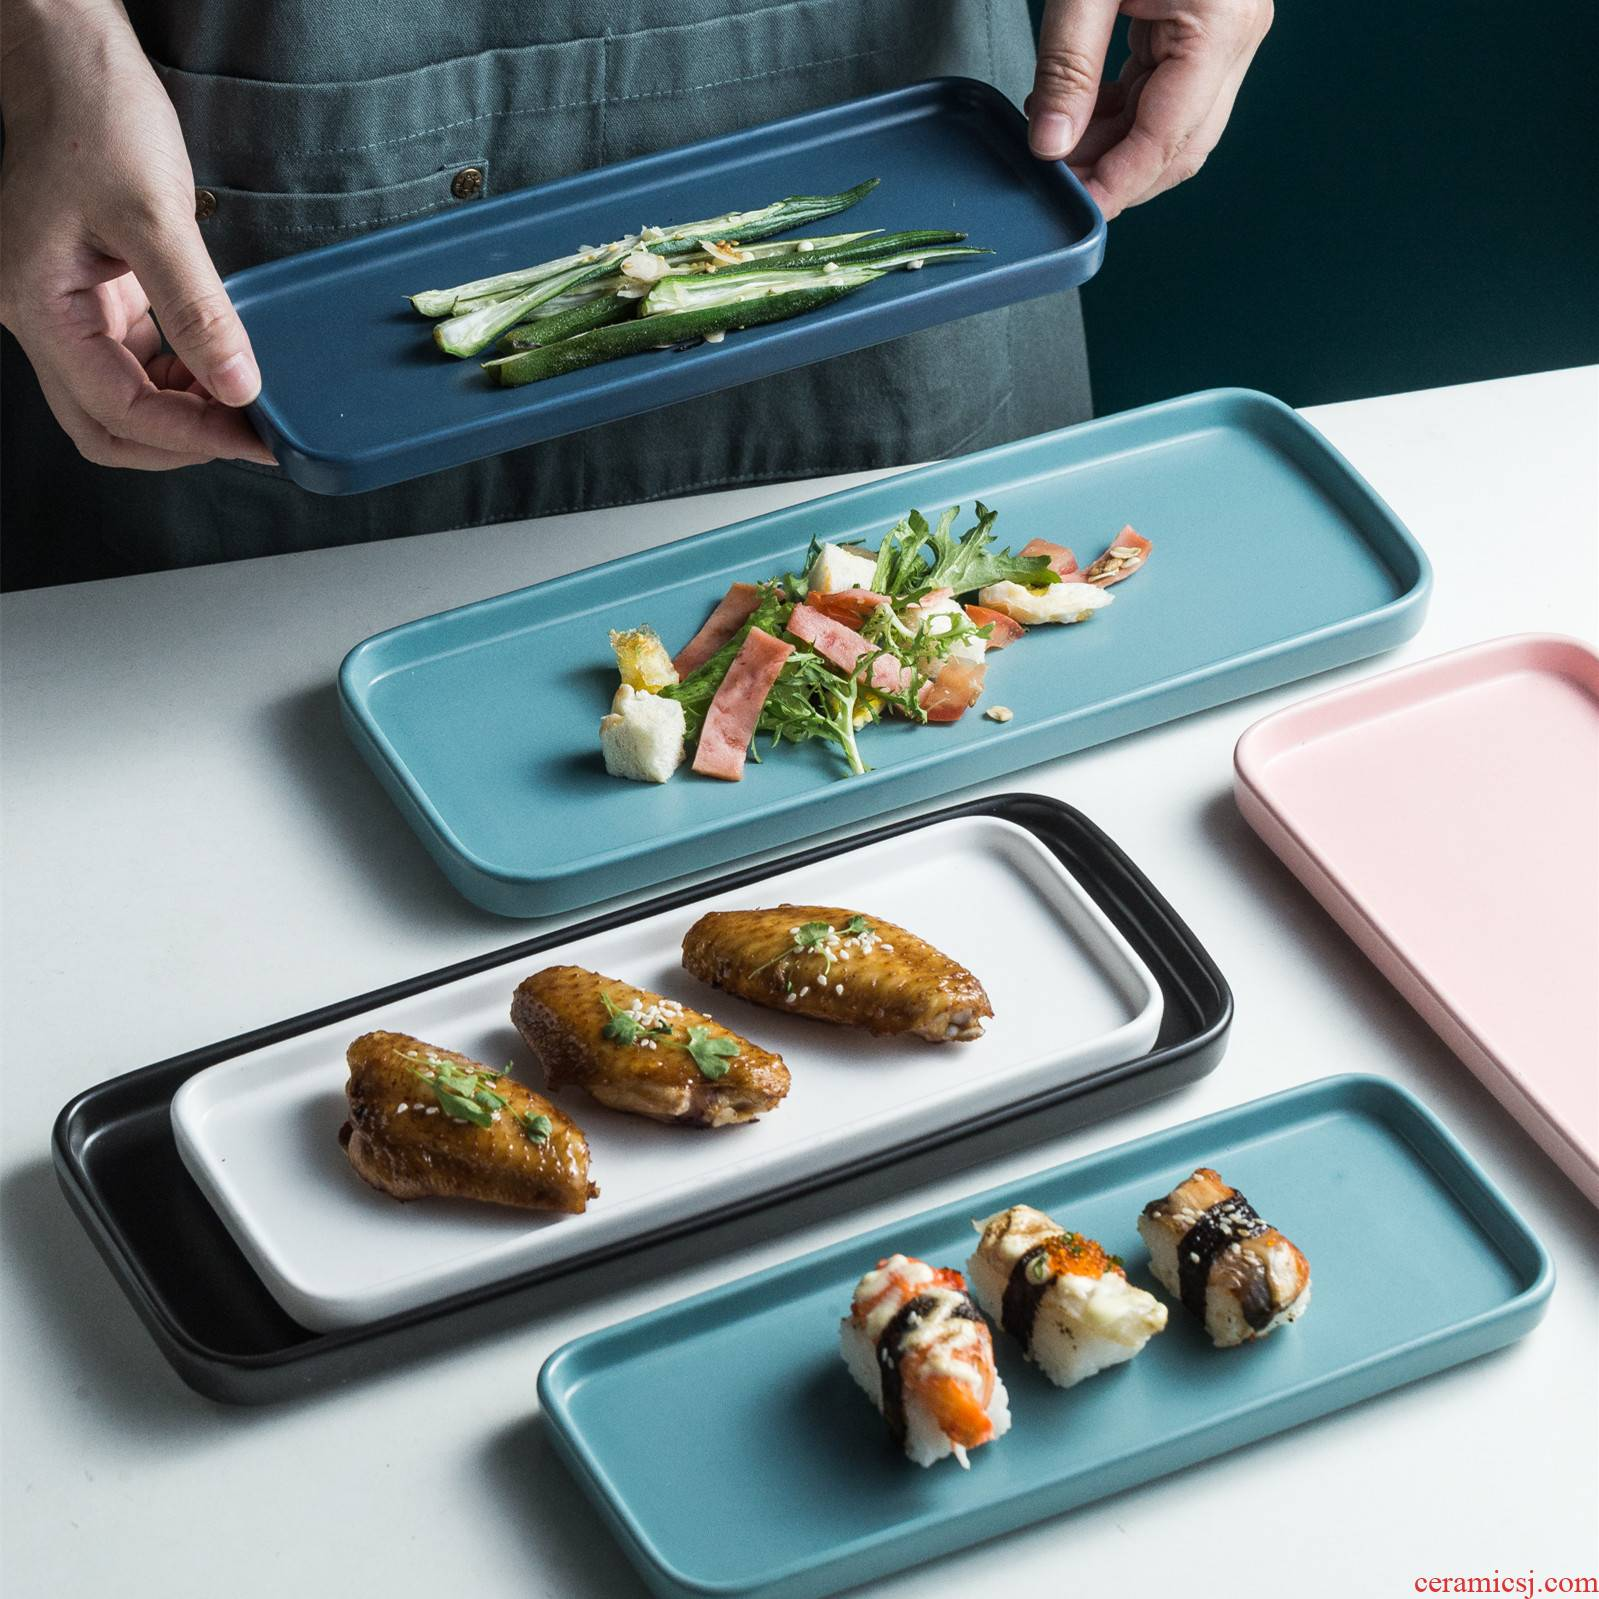 Strip plate household ceramic plate Nordic sushi snack food dish food dish square plates dish fastfood tableware